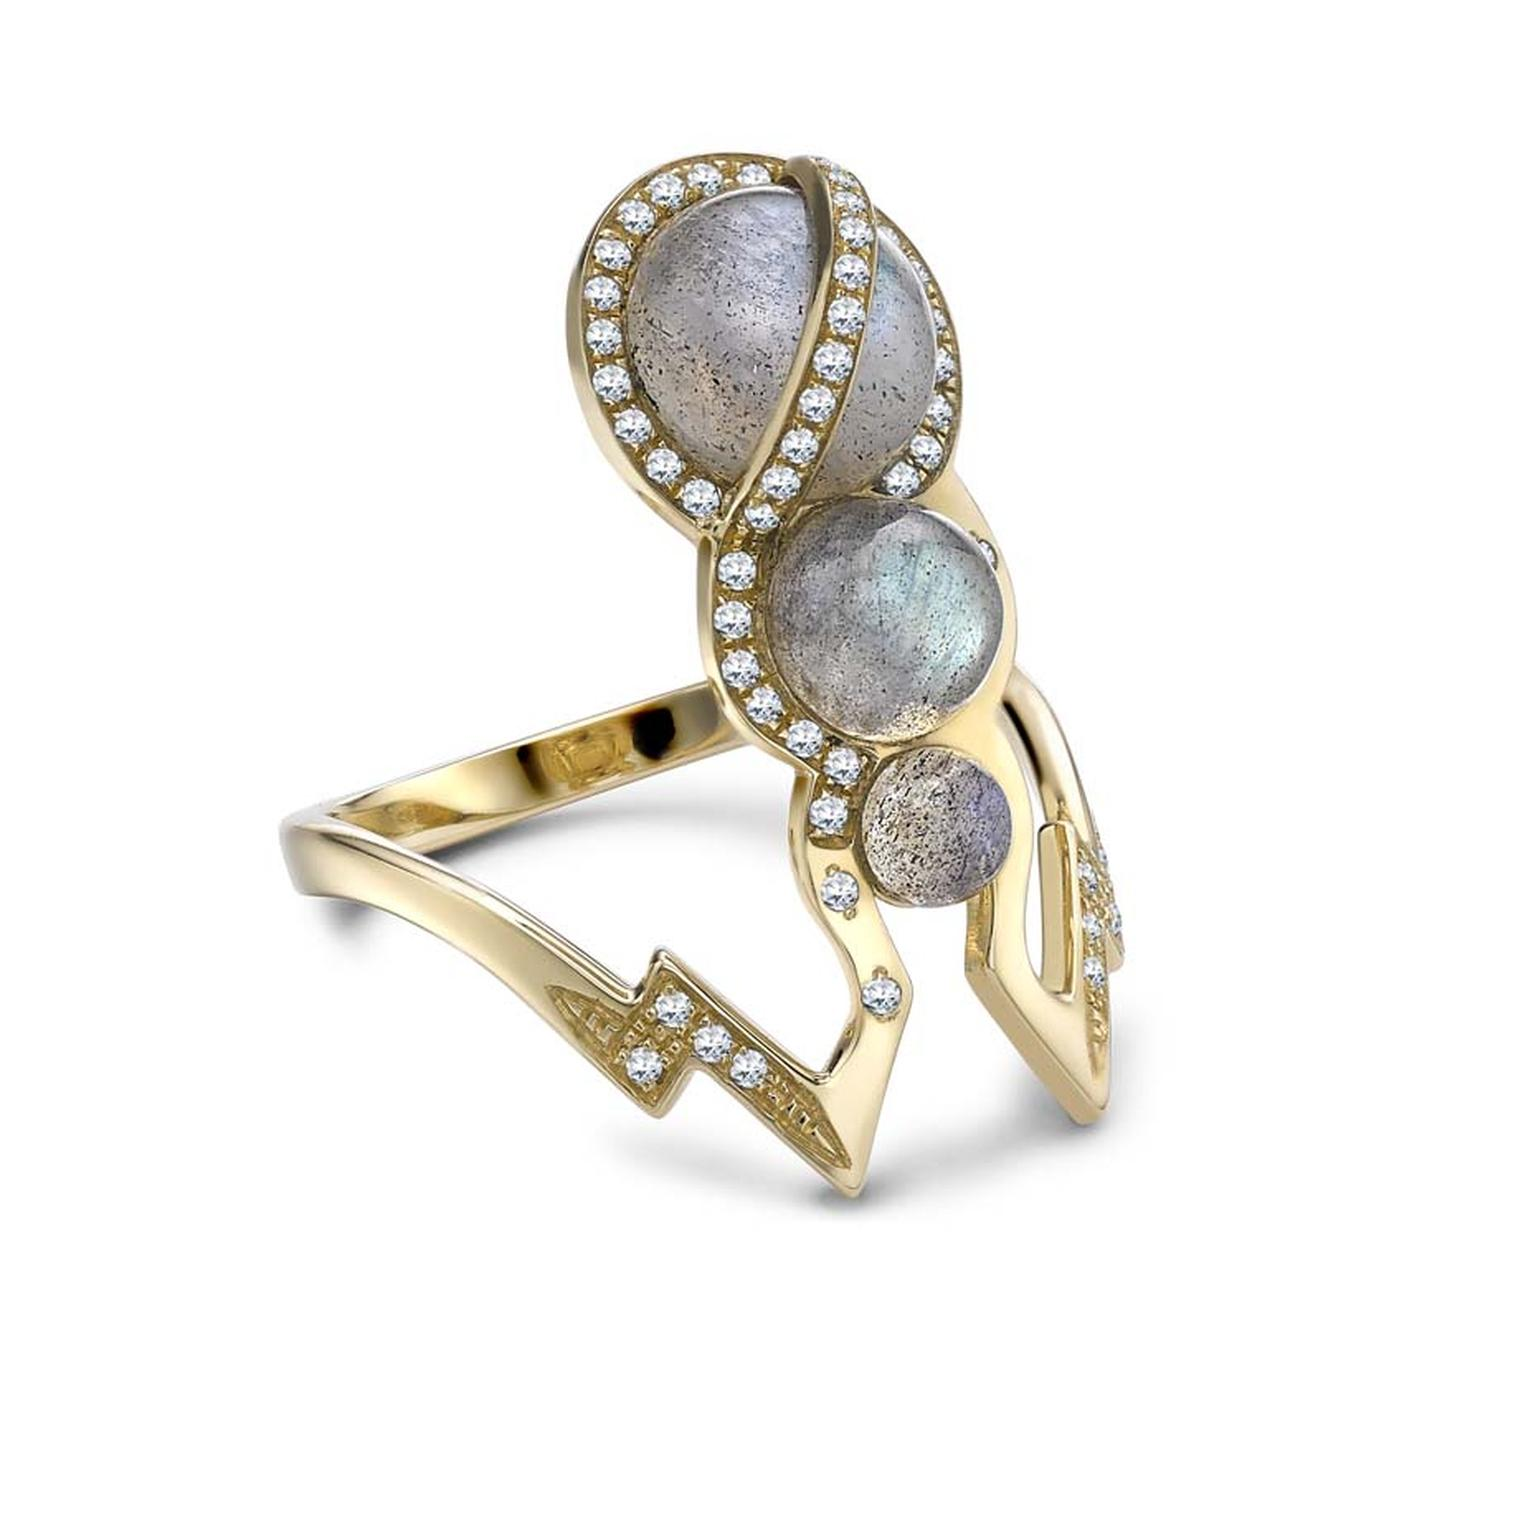 Venyx Theiya Obscura gold ring set with three labradorites and pavé diamonds.